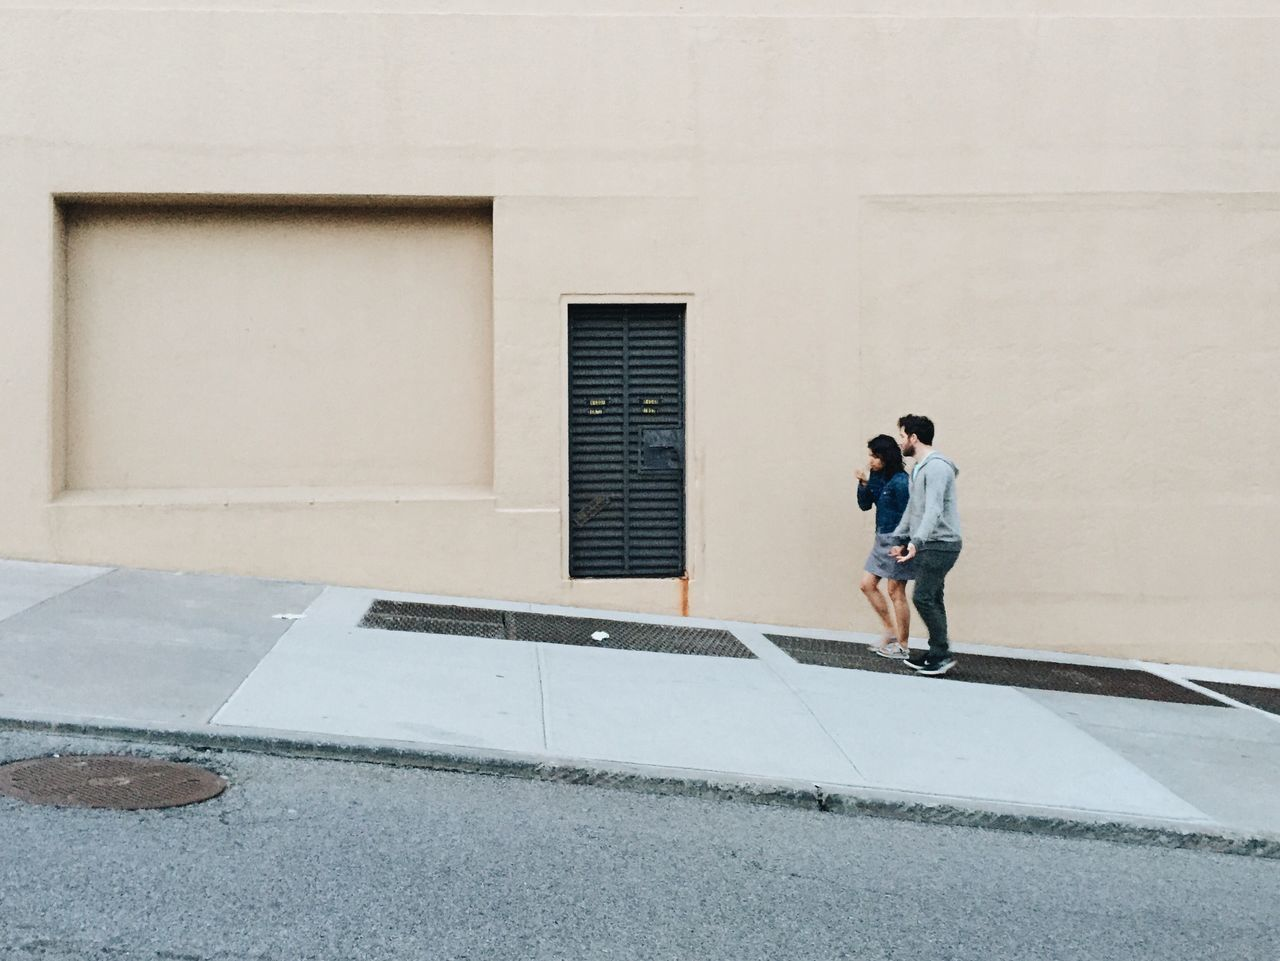 Running up that hill. Urban Geometry Urban Landscape Urbanexploration Architectural Detail Strideby Passing By Cityscapes Minimalism Minimalobsession Minimalmood Street Photography Simplicity Facades EyeEm Deutschland